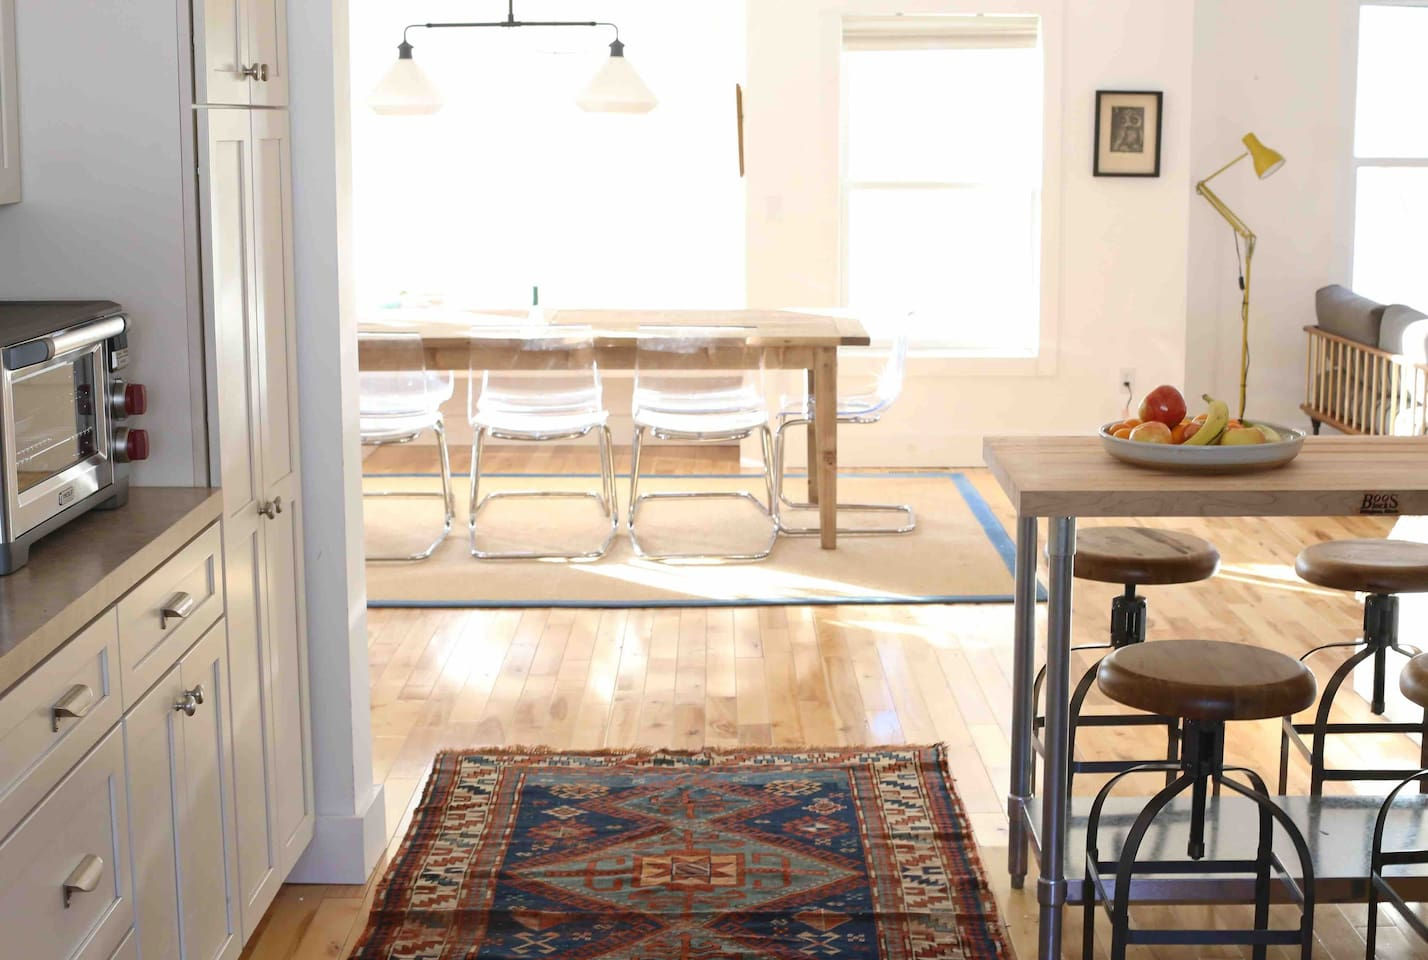 A view from the kitchen. We have a brand new Wolf toaster oven, four swivel stools at the island and our French bakery table from England that seats up to 12. Additional chairs are in the large laundry room.